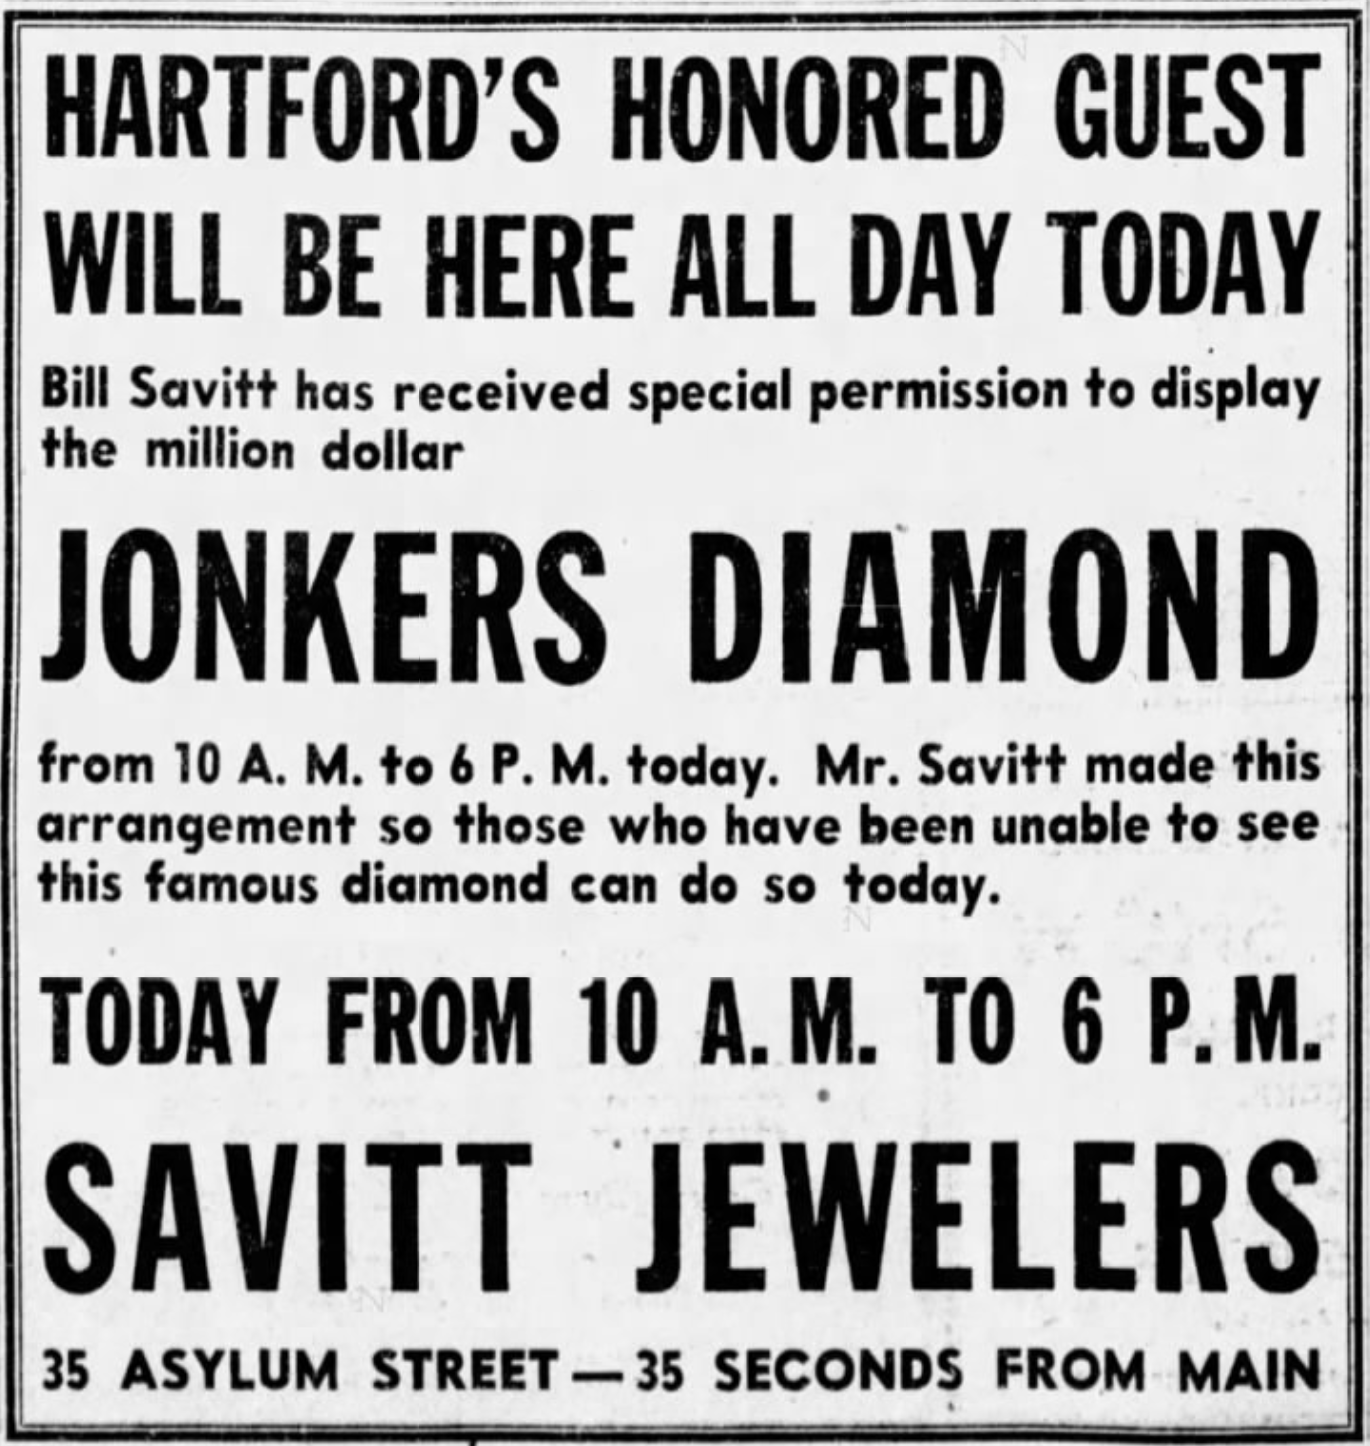 Savitt Jewelers, Jonkers Diamond advertisement, 1945.